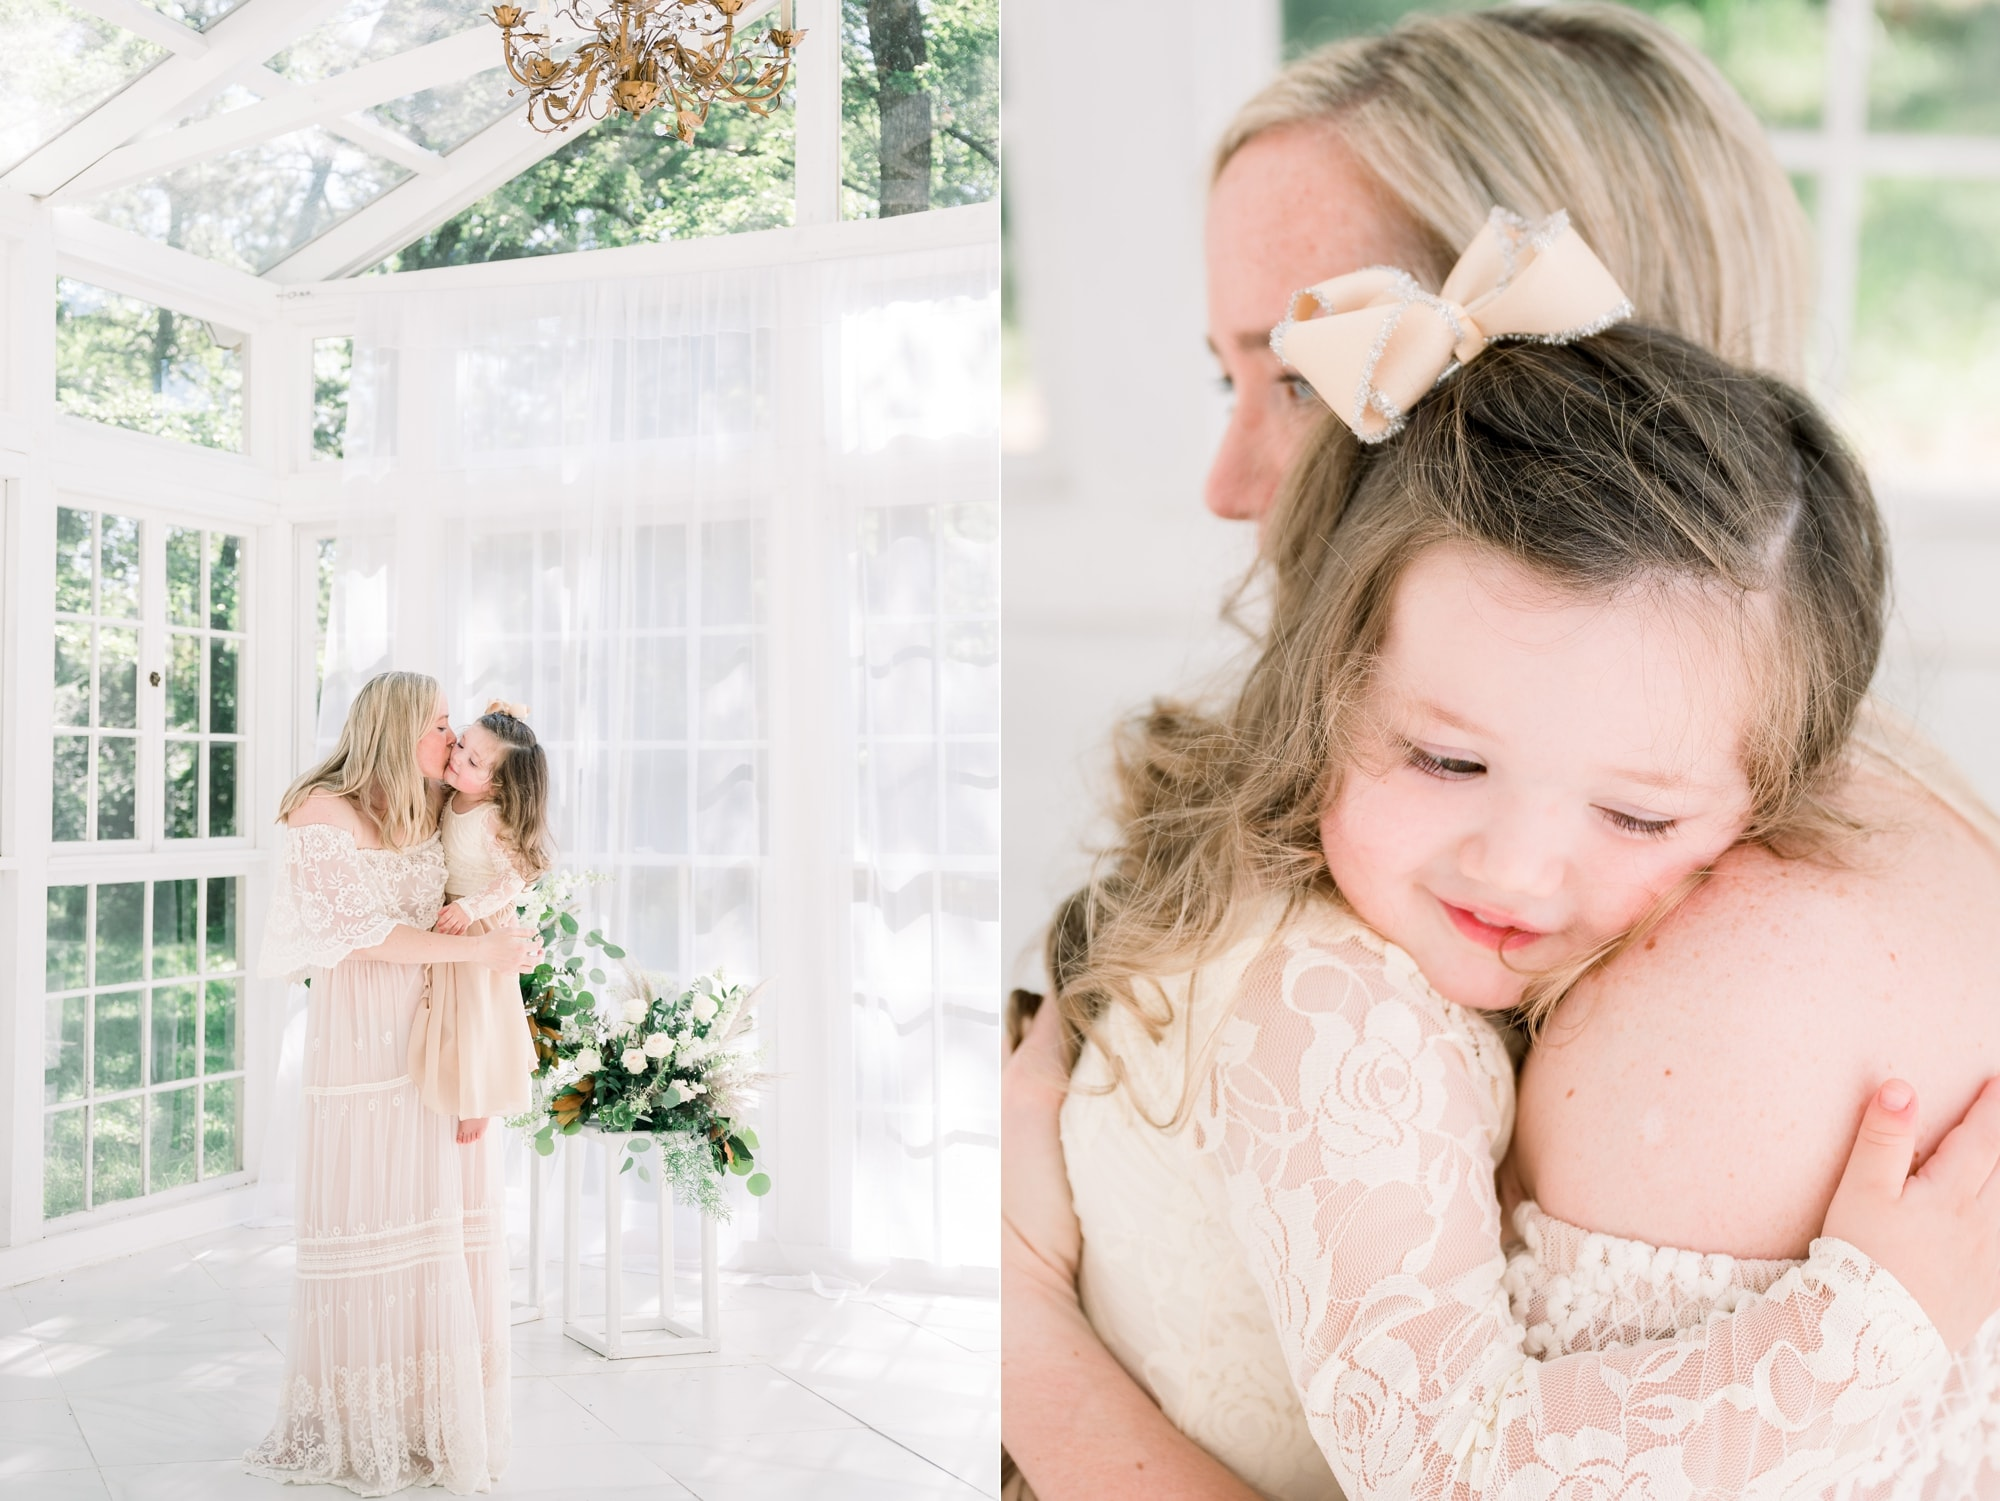 Mom and daughter hugging during motherhood session. Photos by Aimee Hamilton Photography.